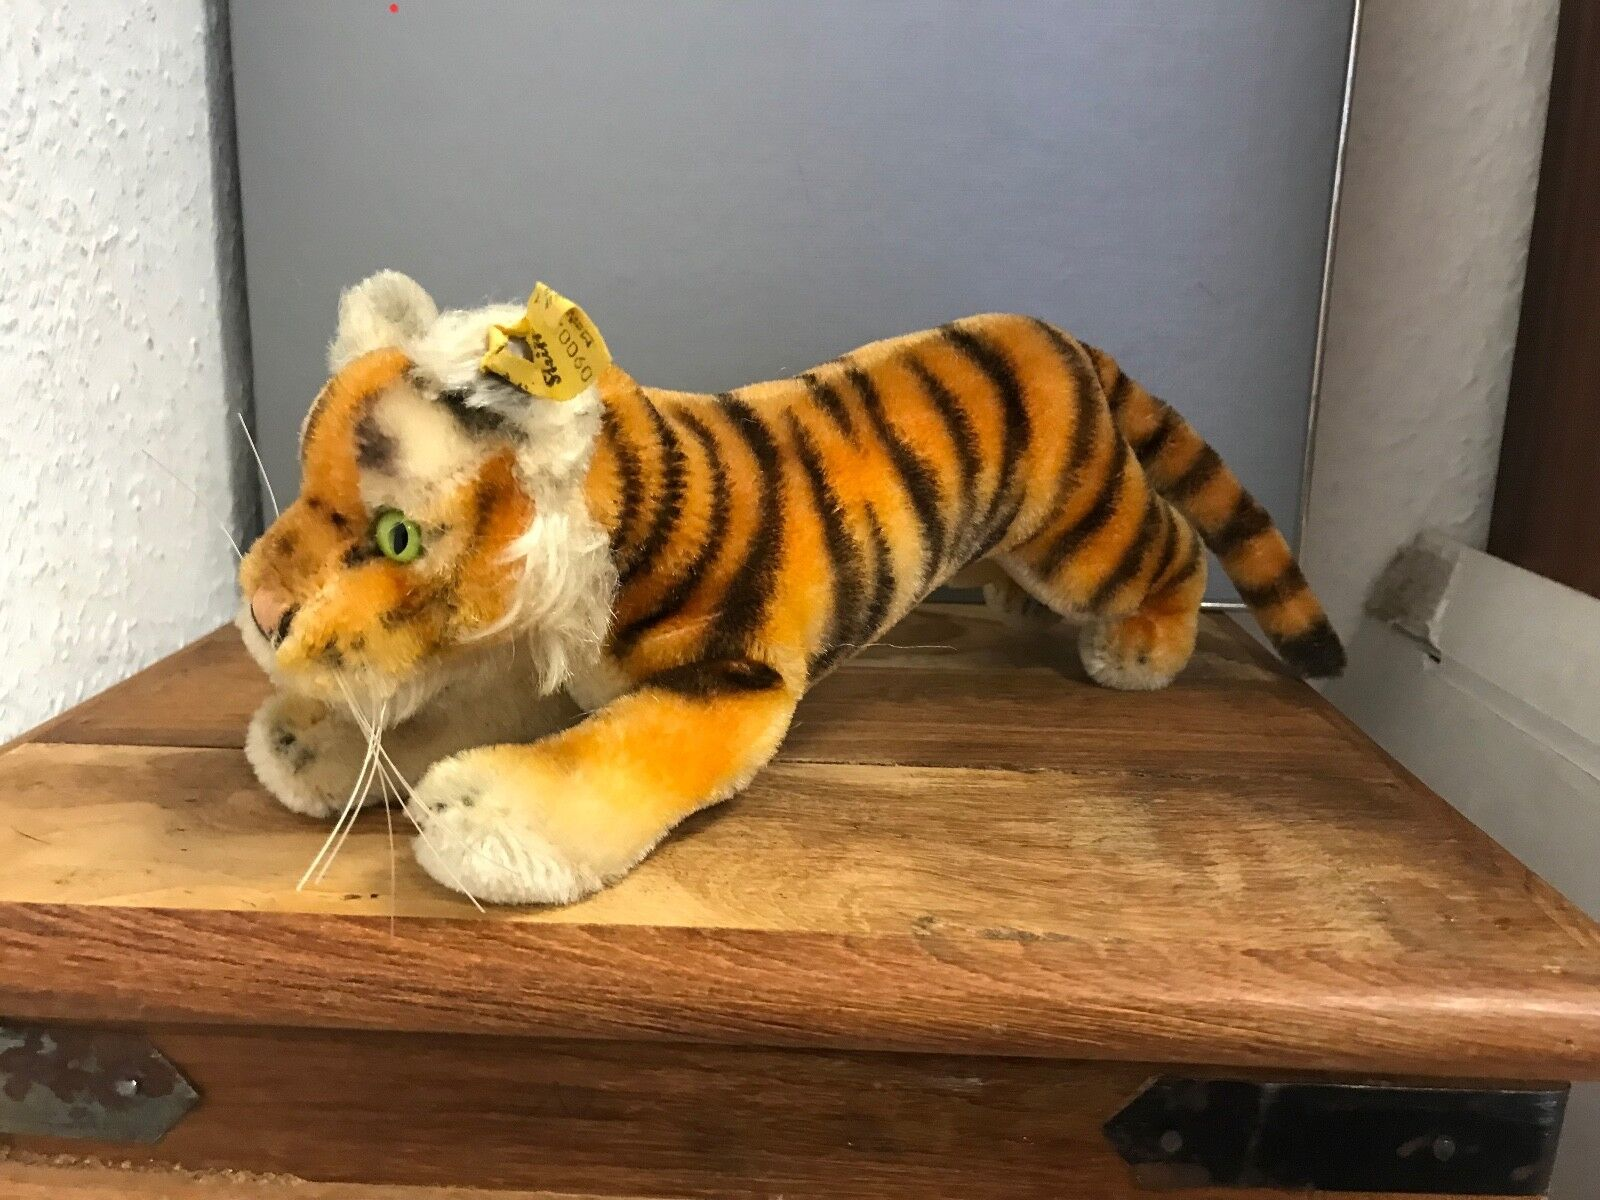 Steiff Animal 0900 14 Tiger 24 Cm. Top Condition